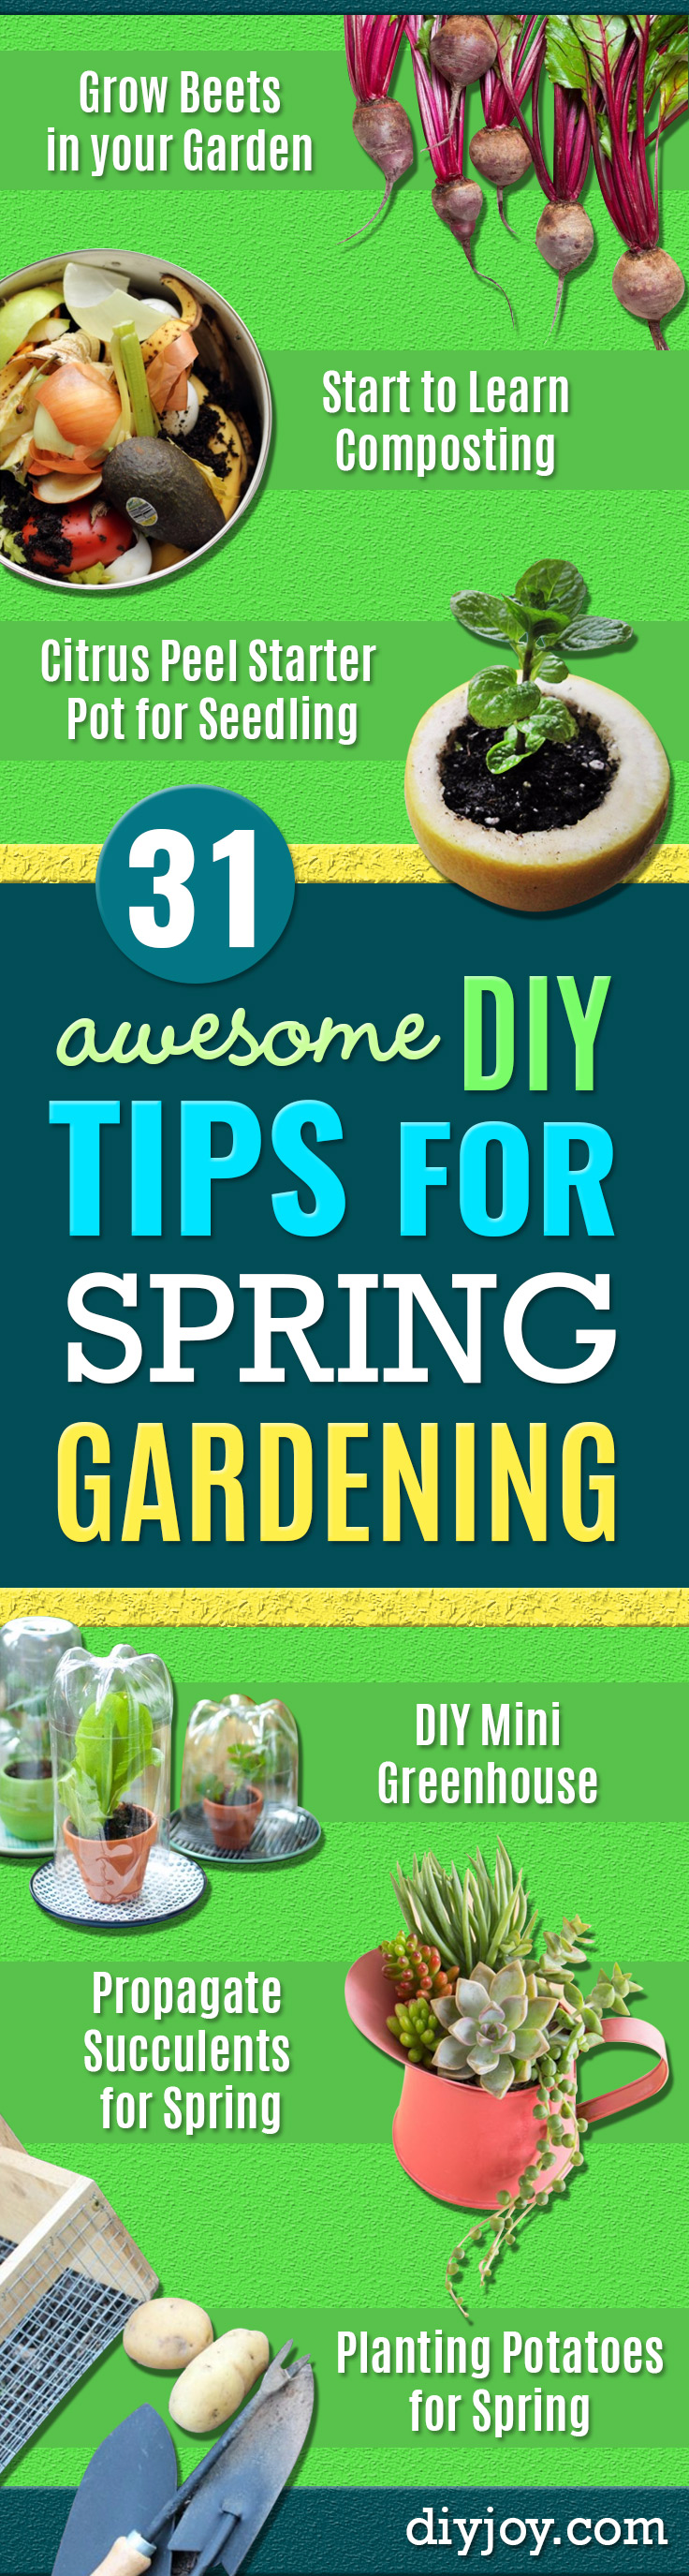 DIY Spring Gardening Projects   Cool And Easy Planting Tips For Spring  Garden   Step By